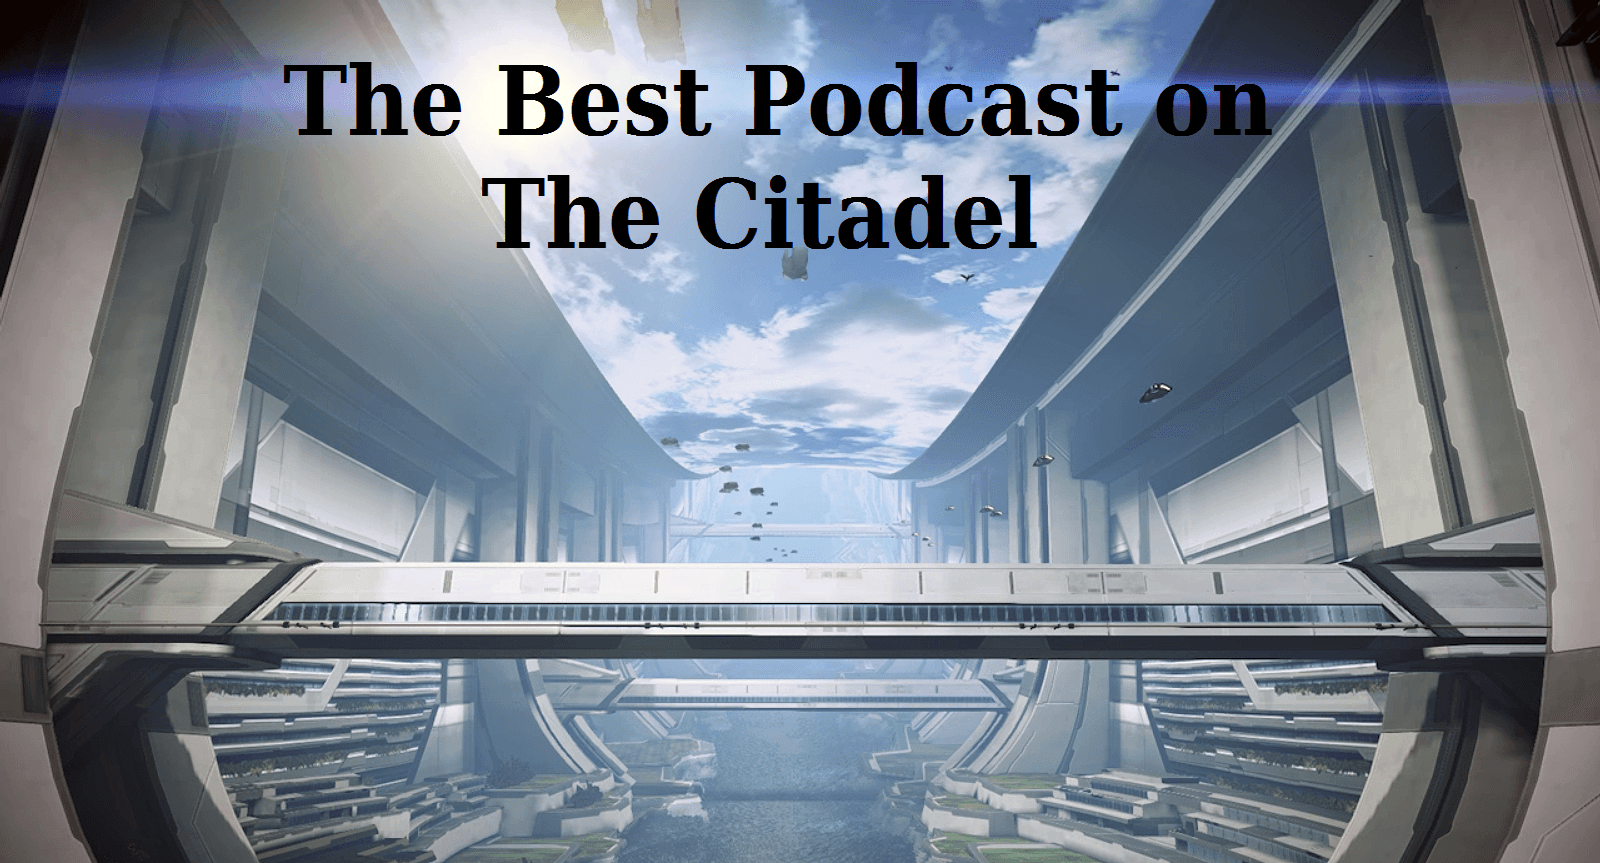 The Best Podcast on the Citadel, Episode 9